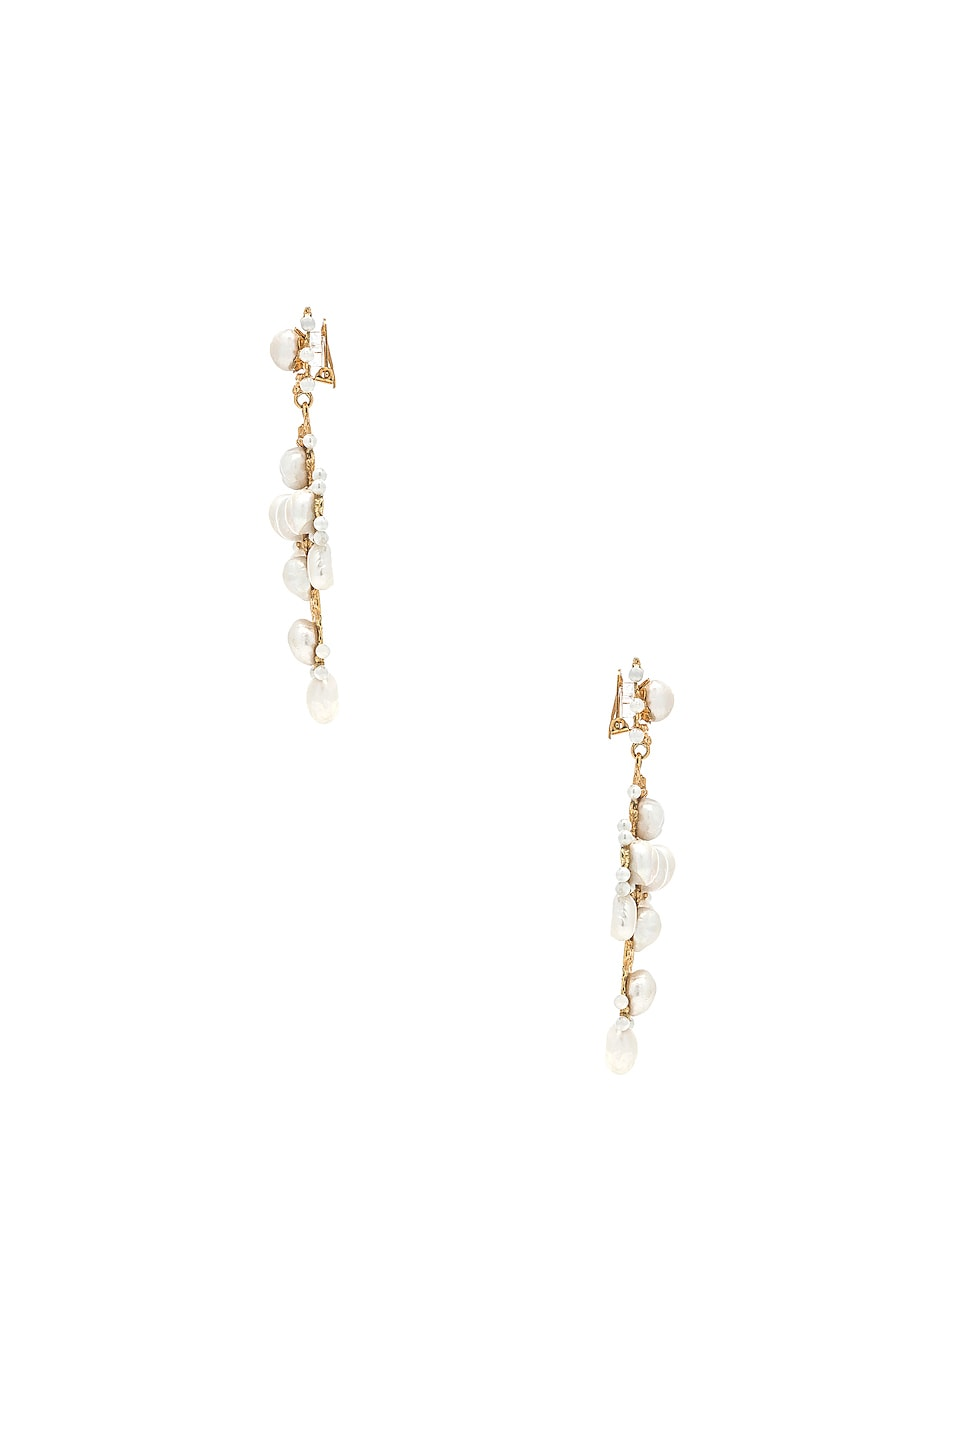 Image 3 of Christie Nicolaides Celestina Earrings in Gold